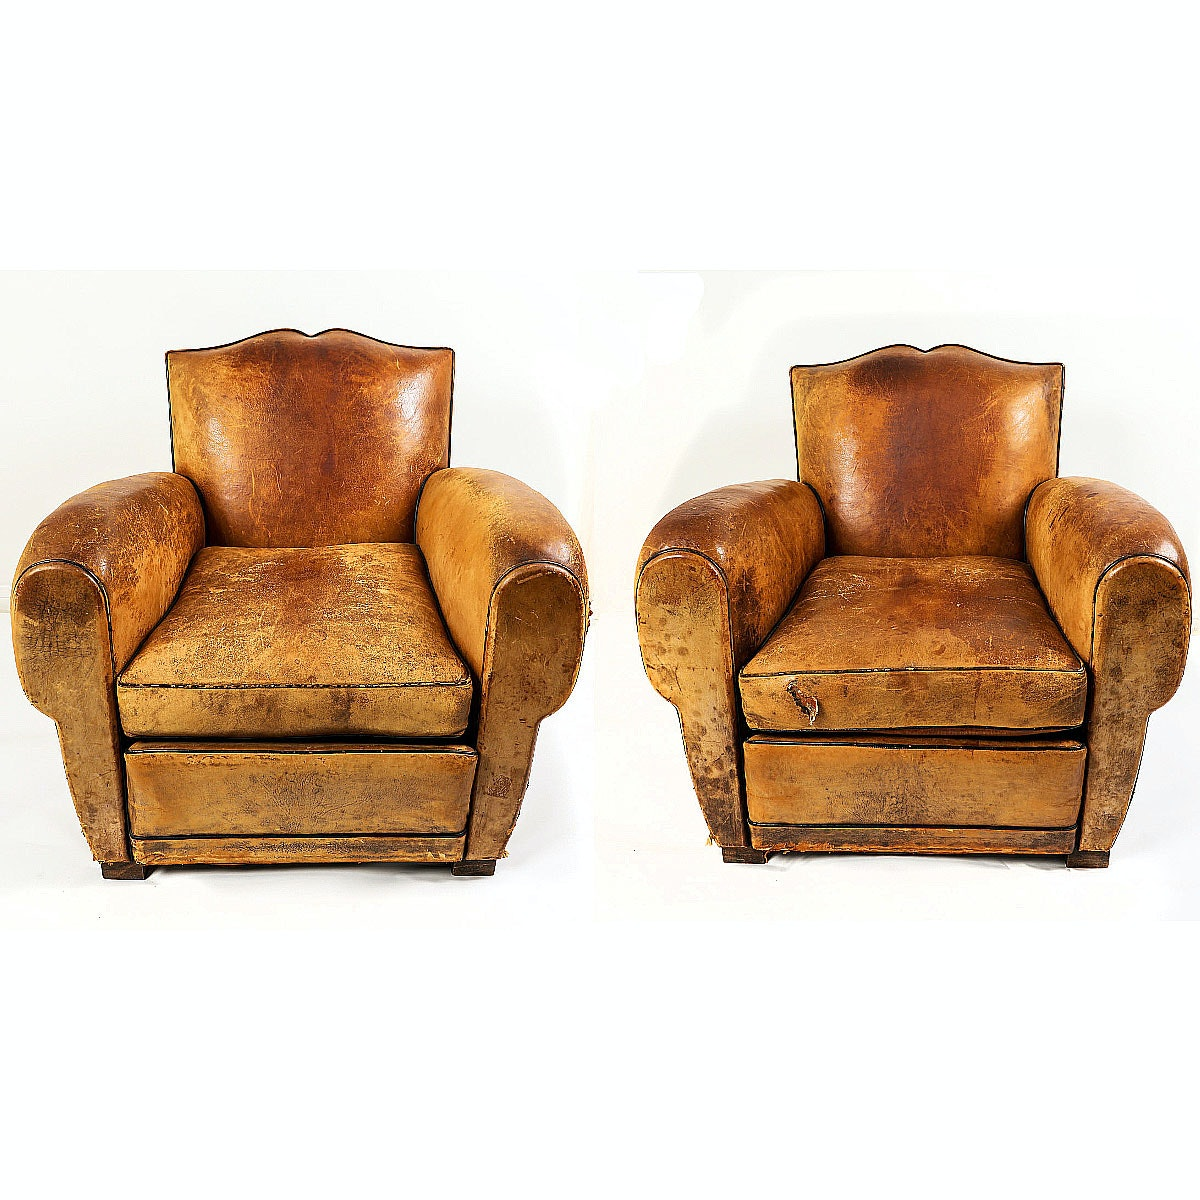 Pair of Antique British Leather Armchairs